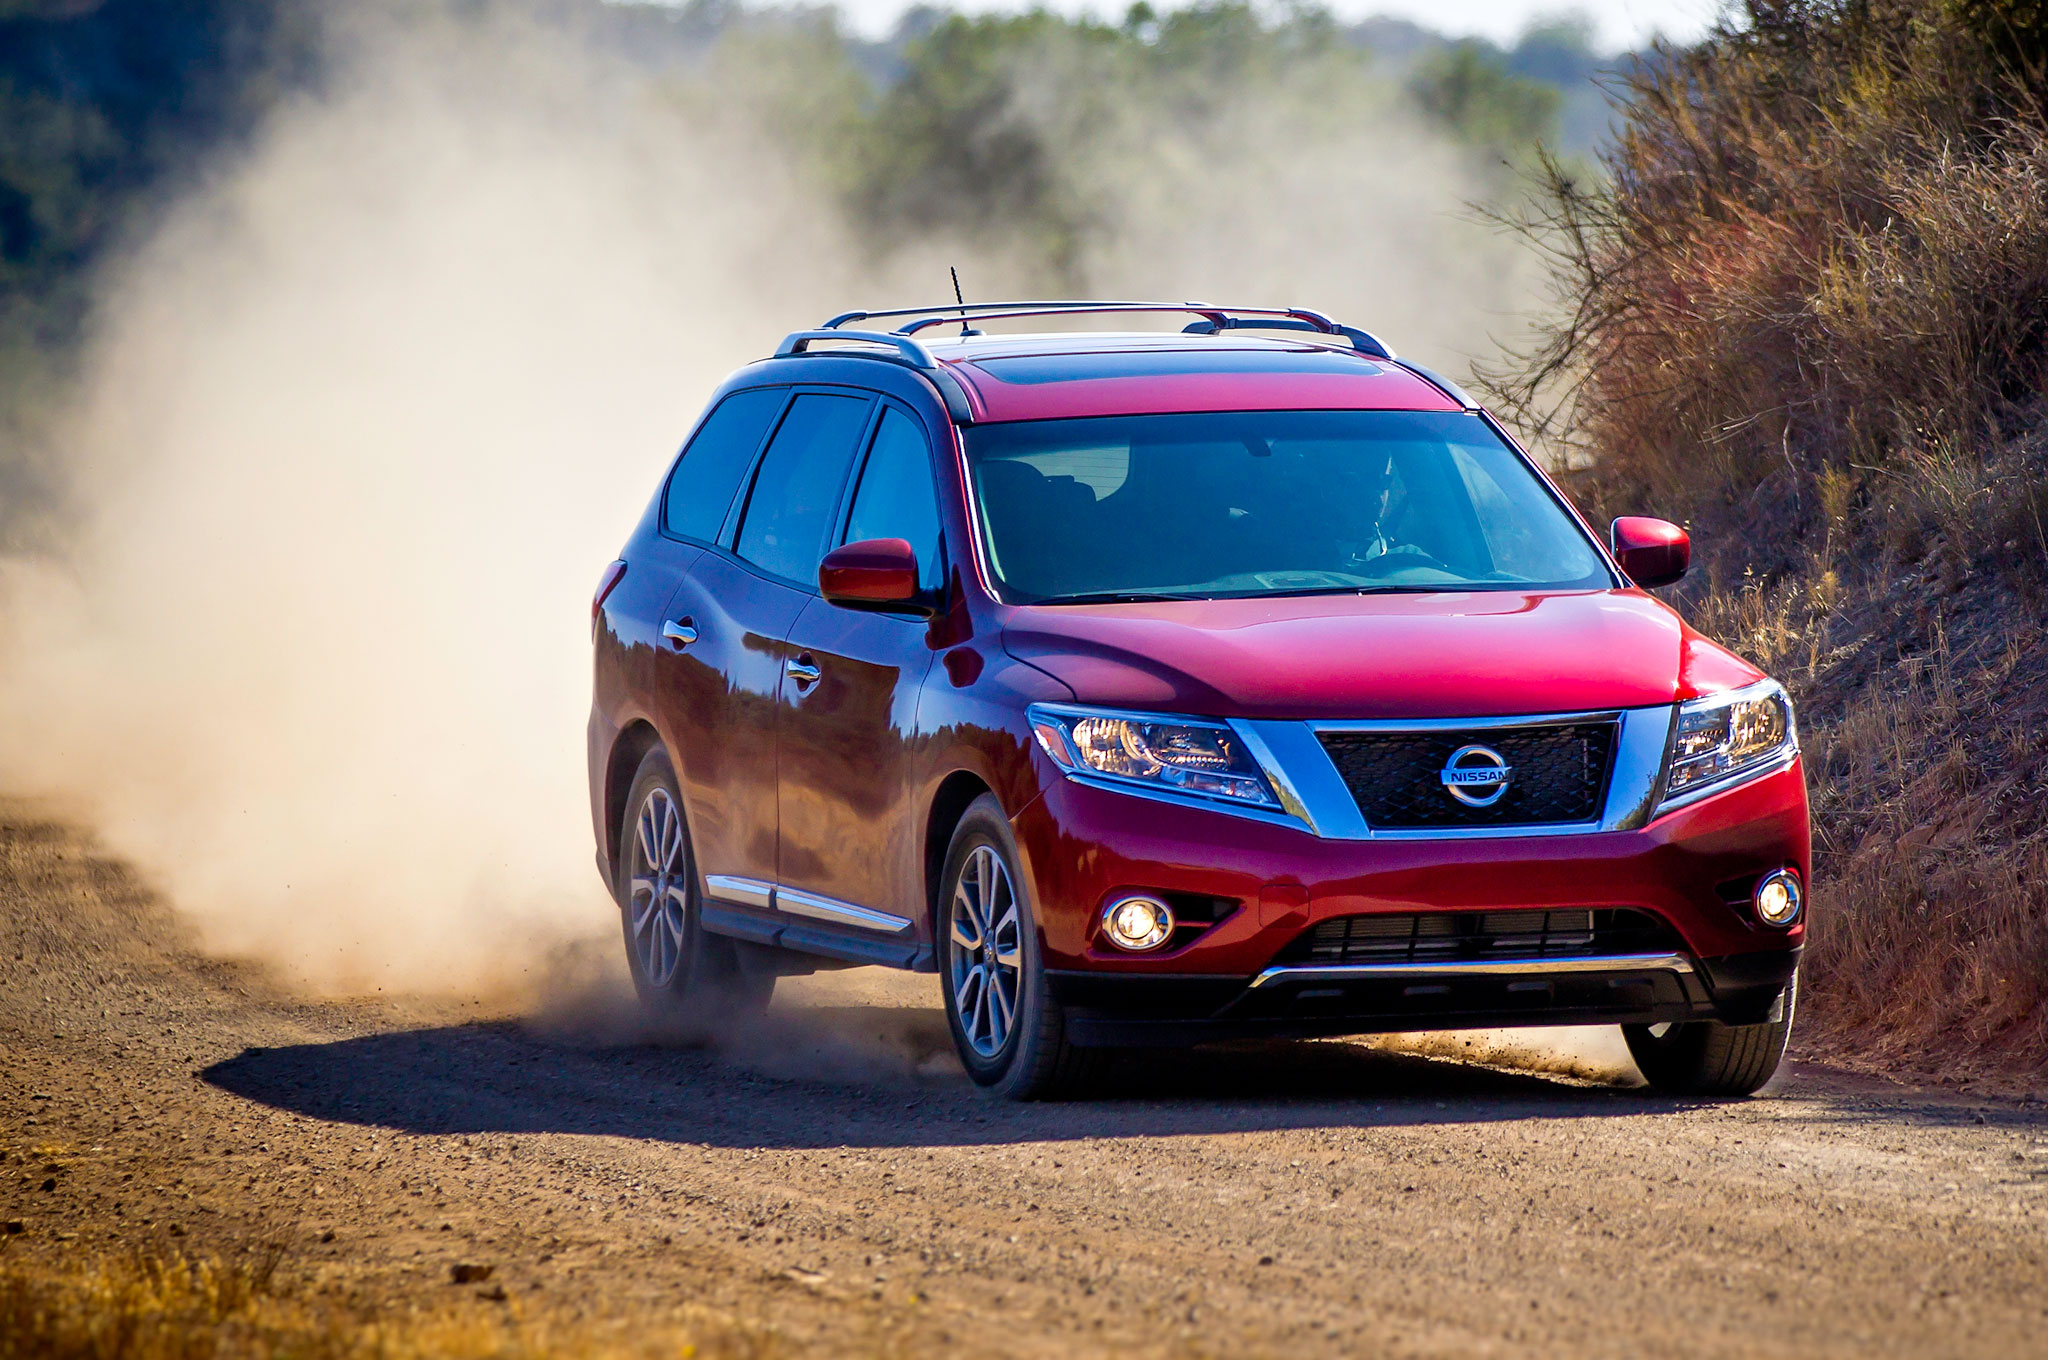 2014 Nissan Pathfinder Priced At $29,545, Nav Now Offered On SL